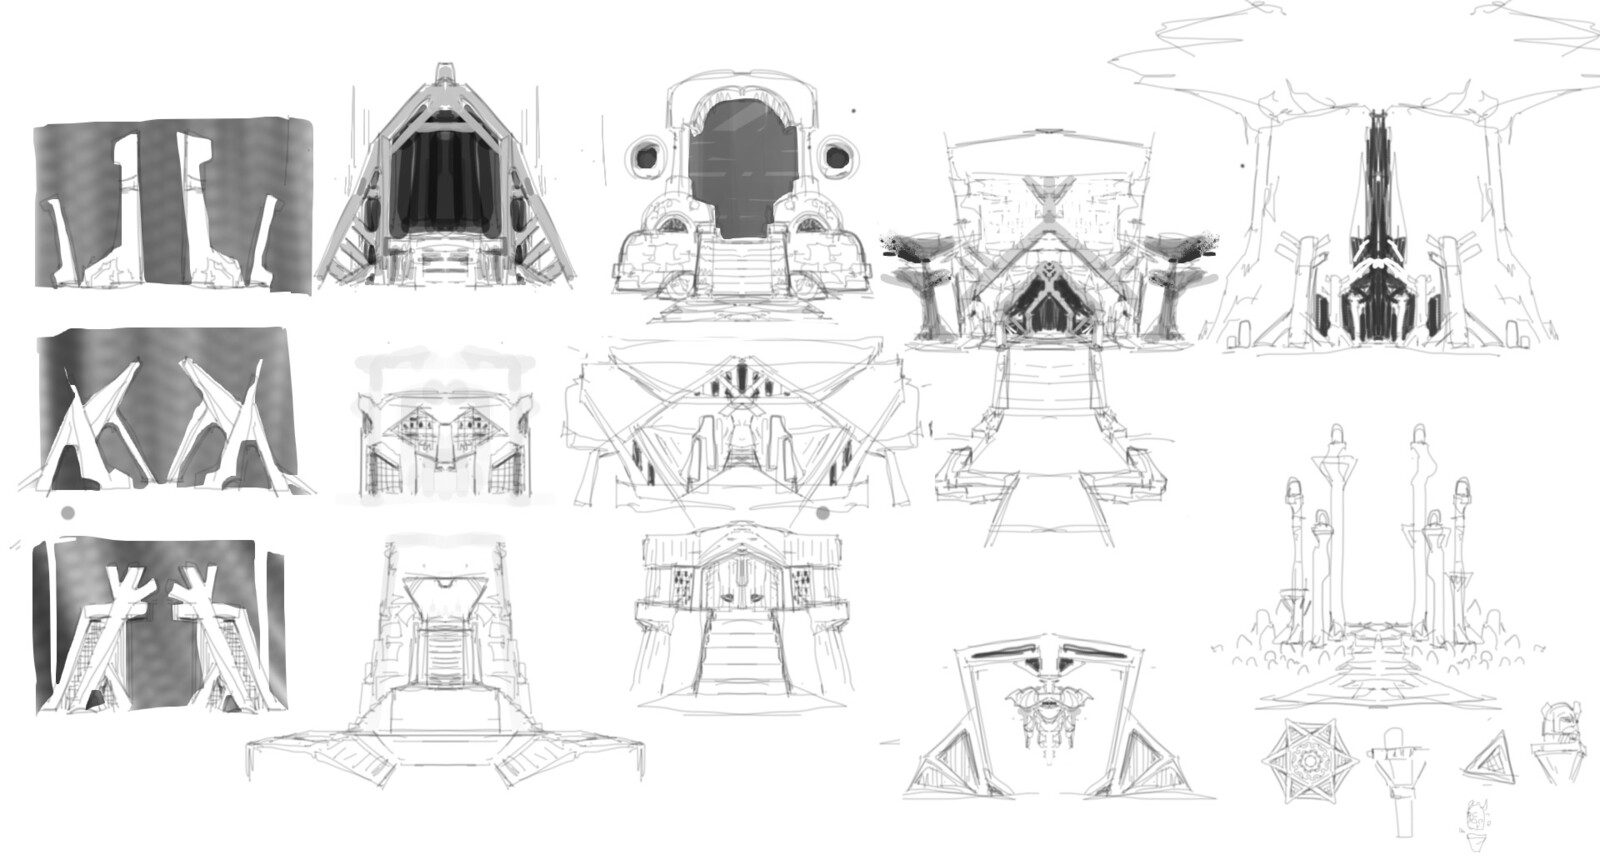 Early Sketches exploring the look and arrangement of objects around the entrance.